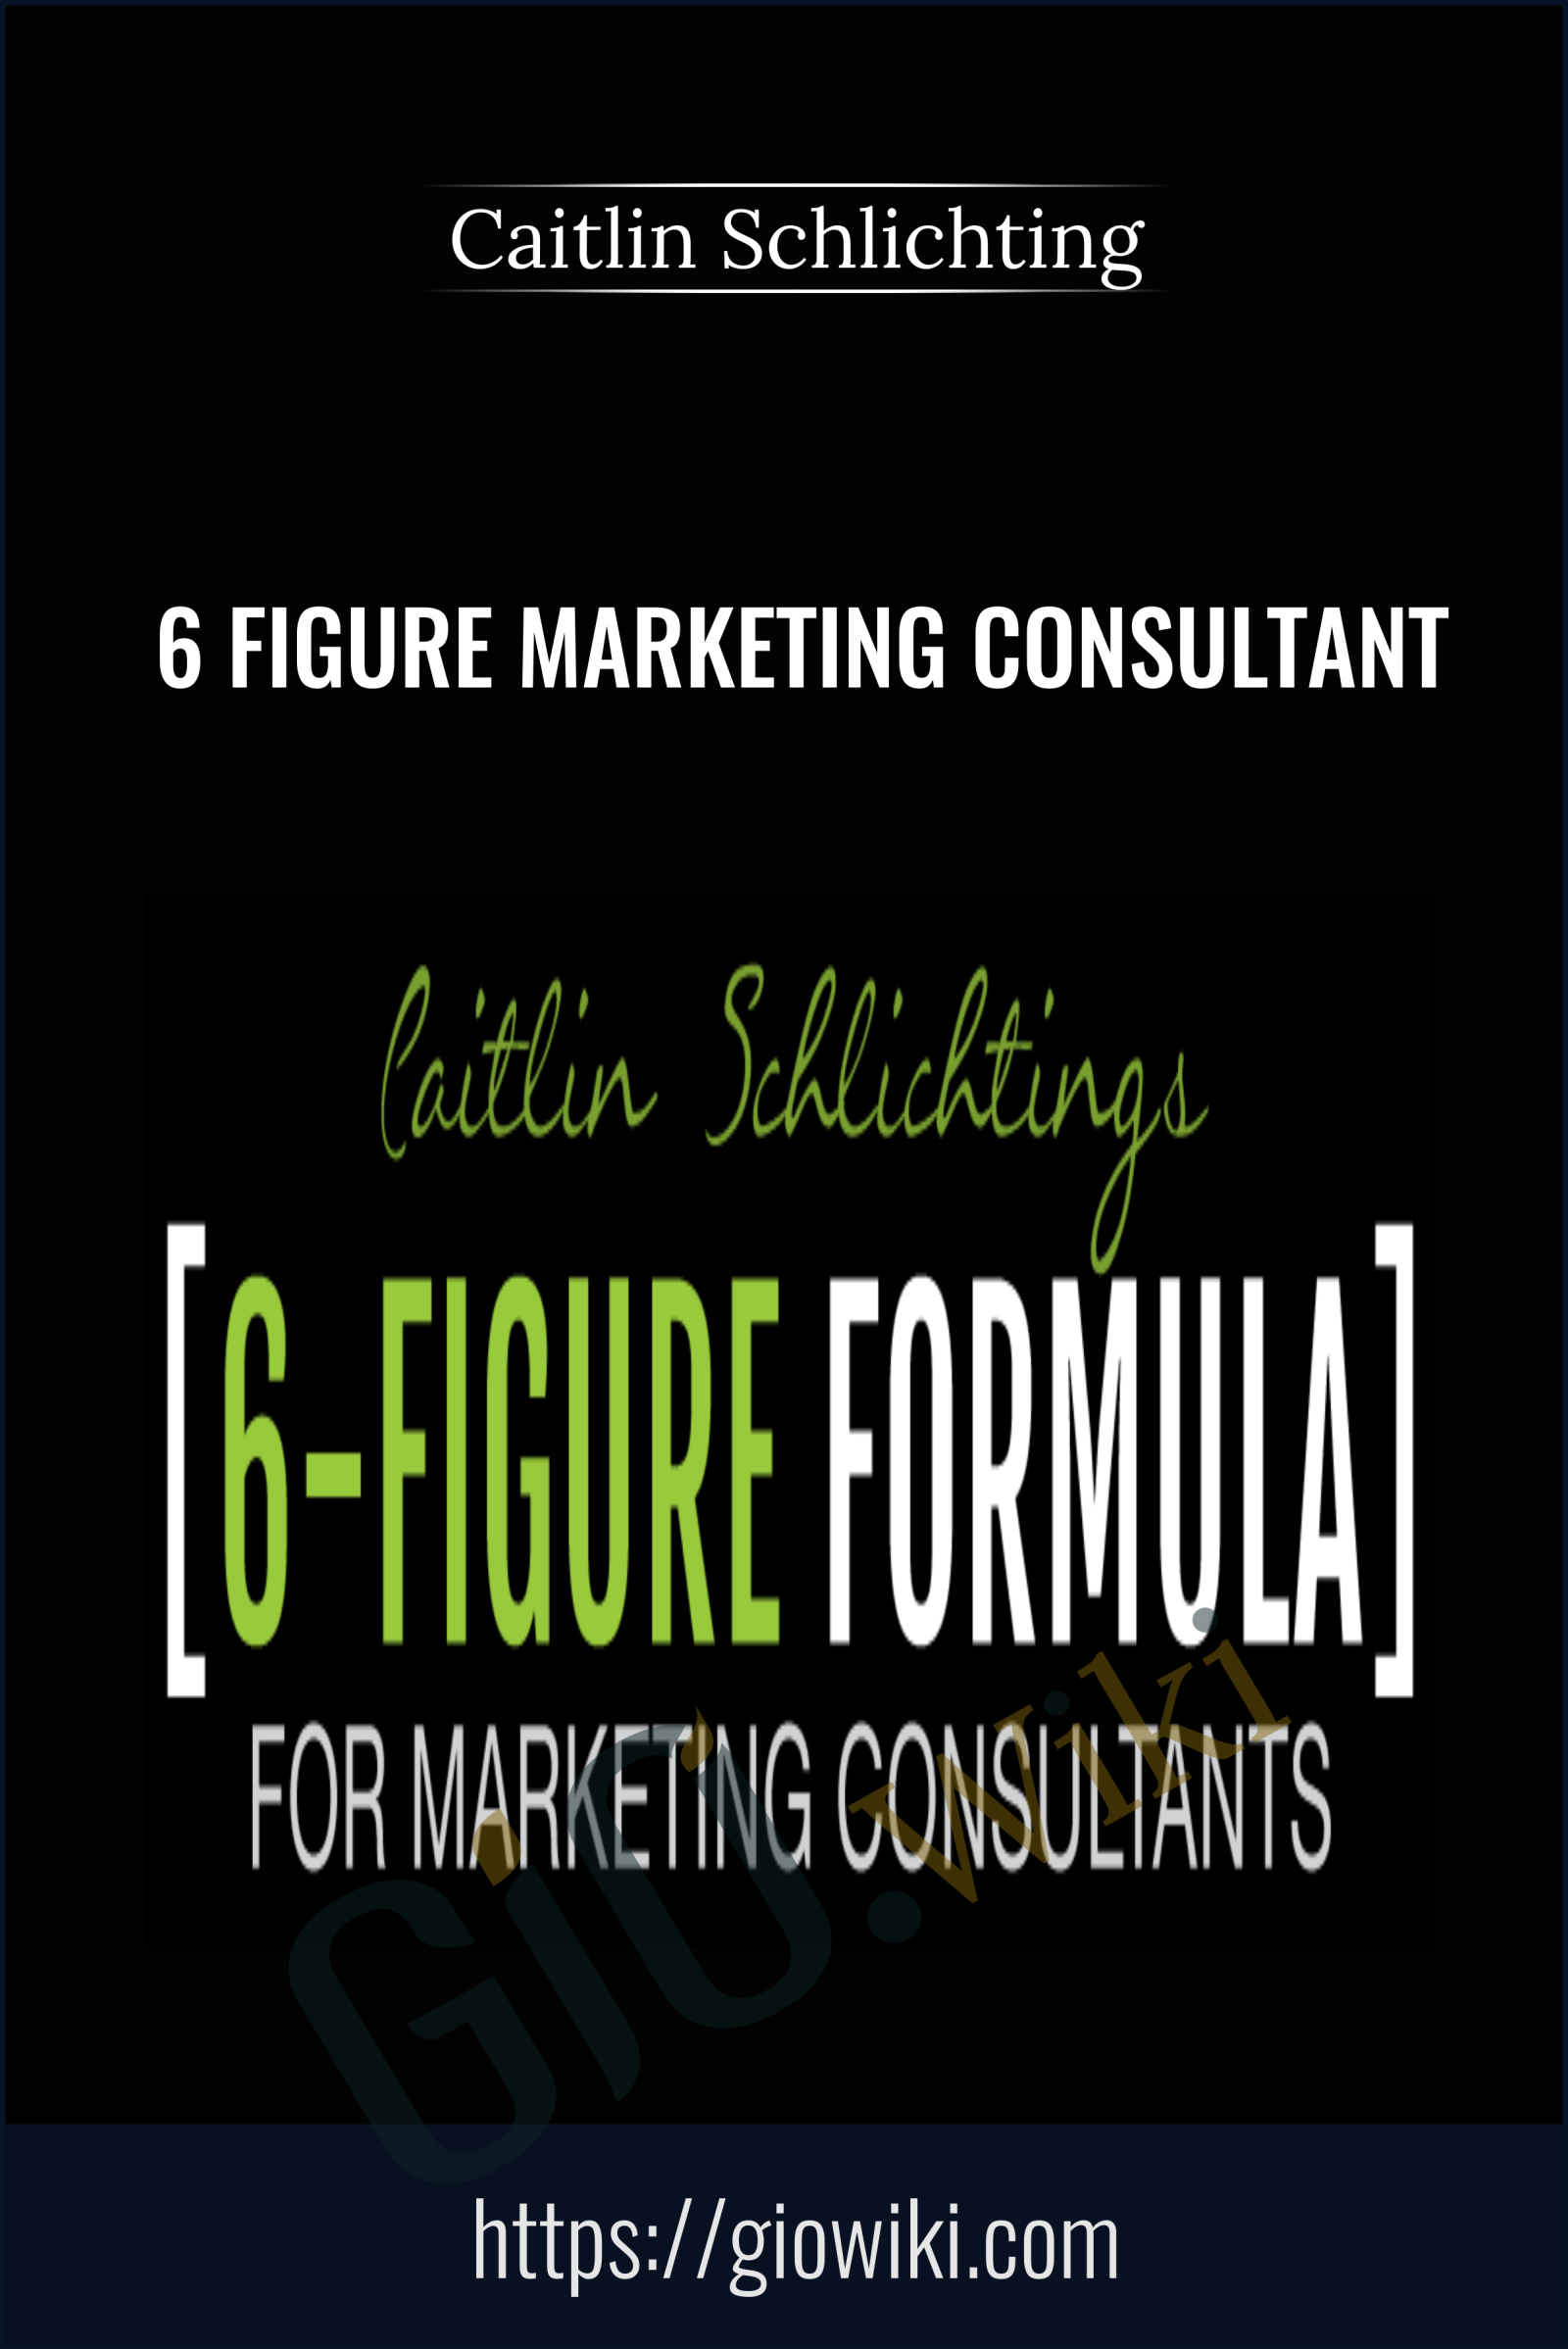 6 Figure Marketing Consultant - Caitlin Schlichting